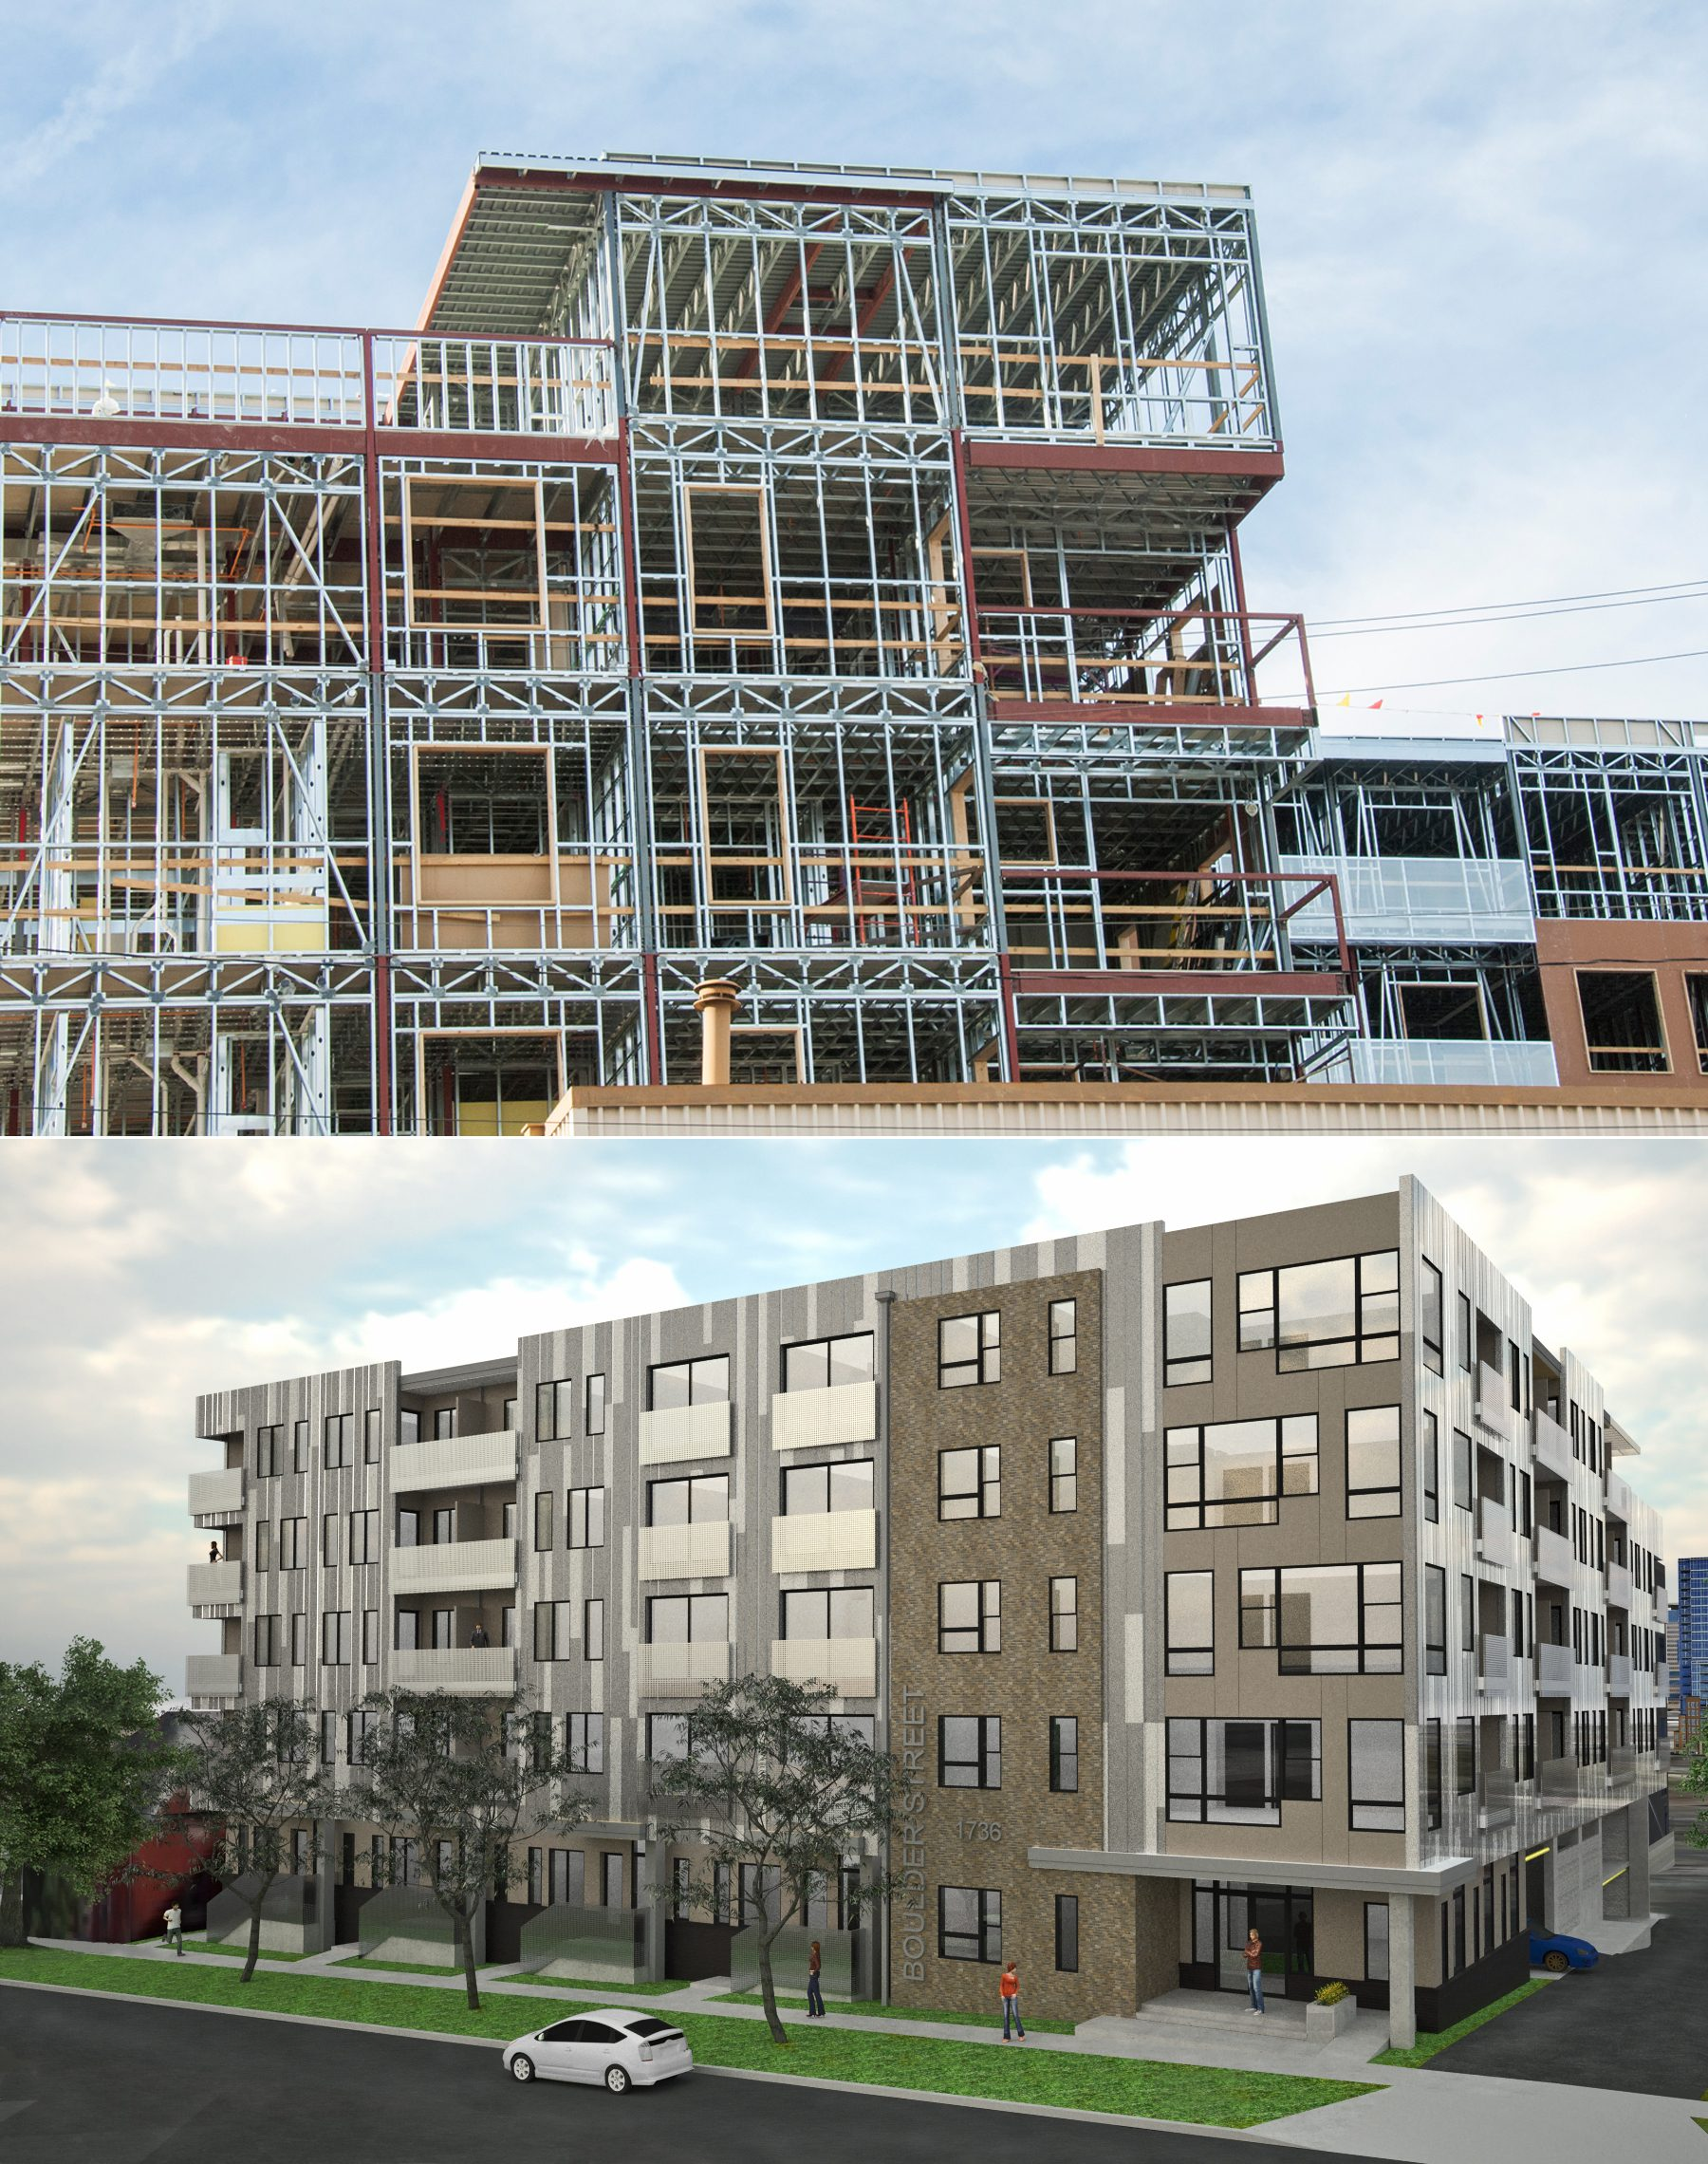 Components of the structural system can be seen in these photos of the B Street LoHi building.